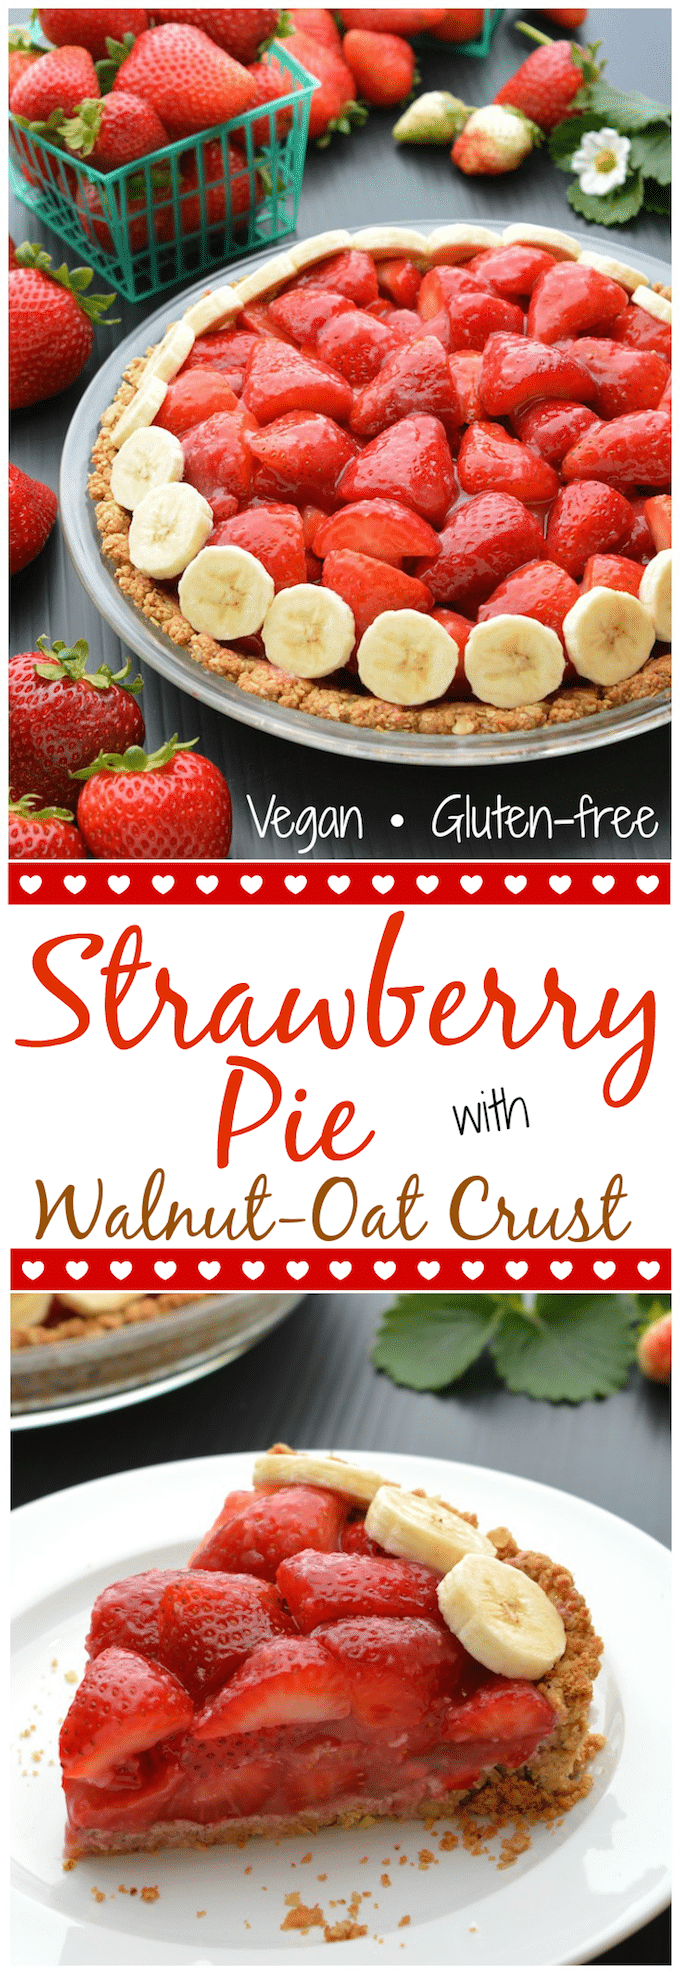 Easy Vegan, Gluten-Free Strawberry Pie with Walnut-Oat Crust.  This pie is super simple to prepare and, hands down, my favorite strawberry pie!  Fresh strawberries piled high inside an amazing walnut-oat crust, this will be your new go to Spring/Summer pie! #veganpie #veganstrawberrypie #glutenfreepie #strawberryrecipe #veganpierecipe #easypierecipe #springpie #summerpie